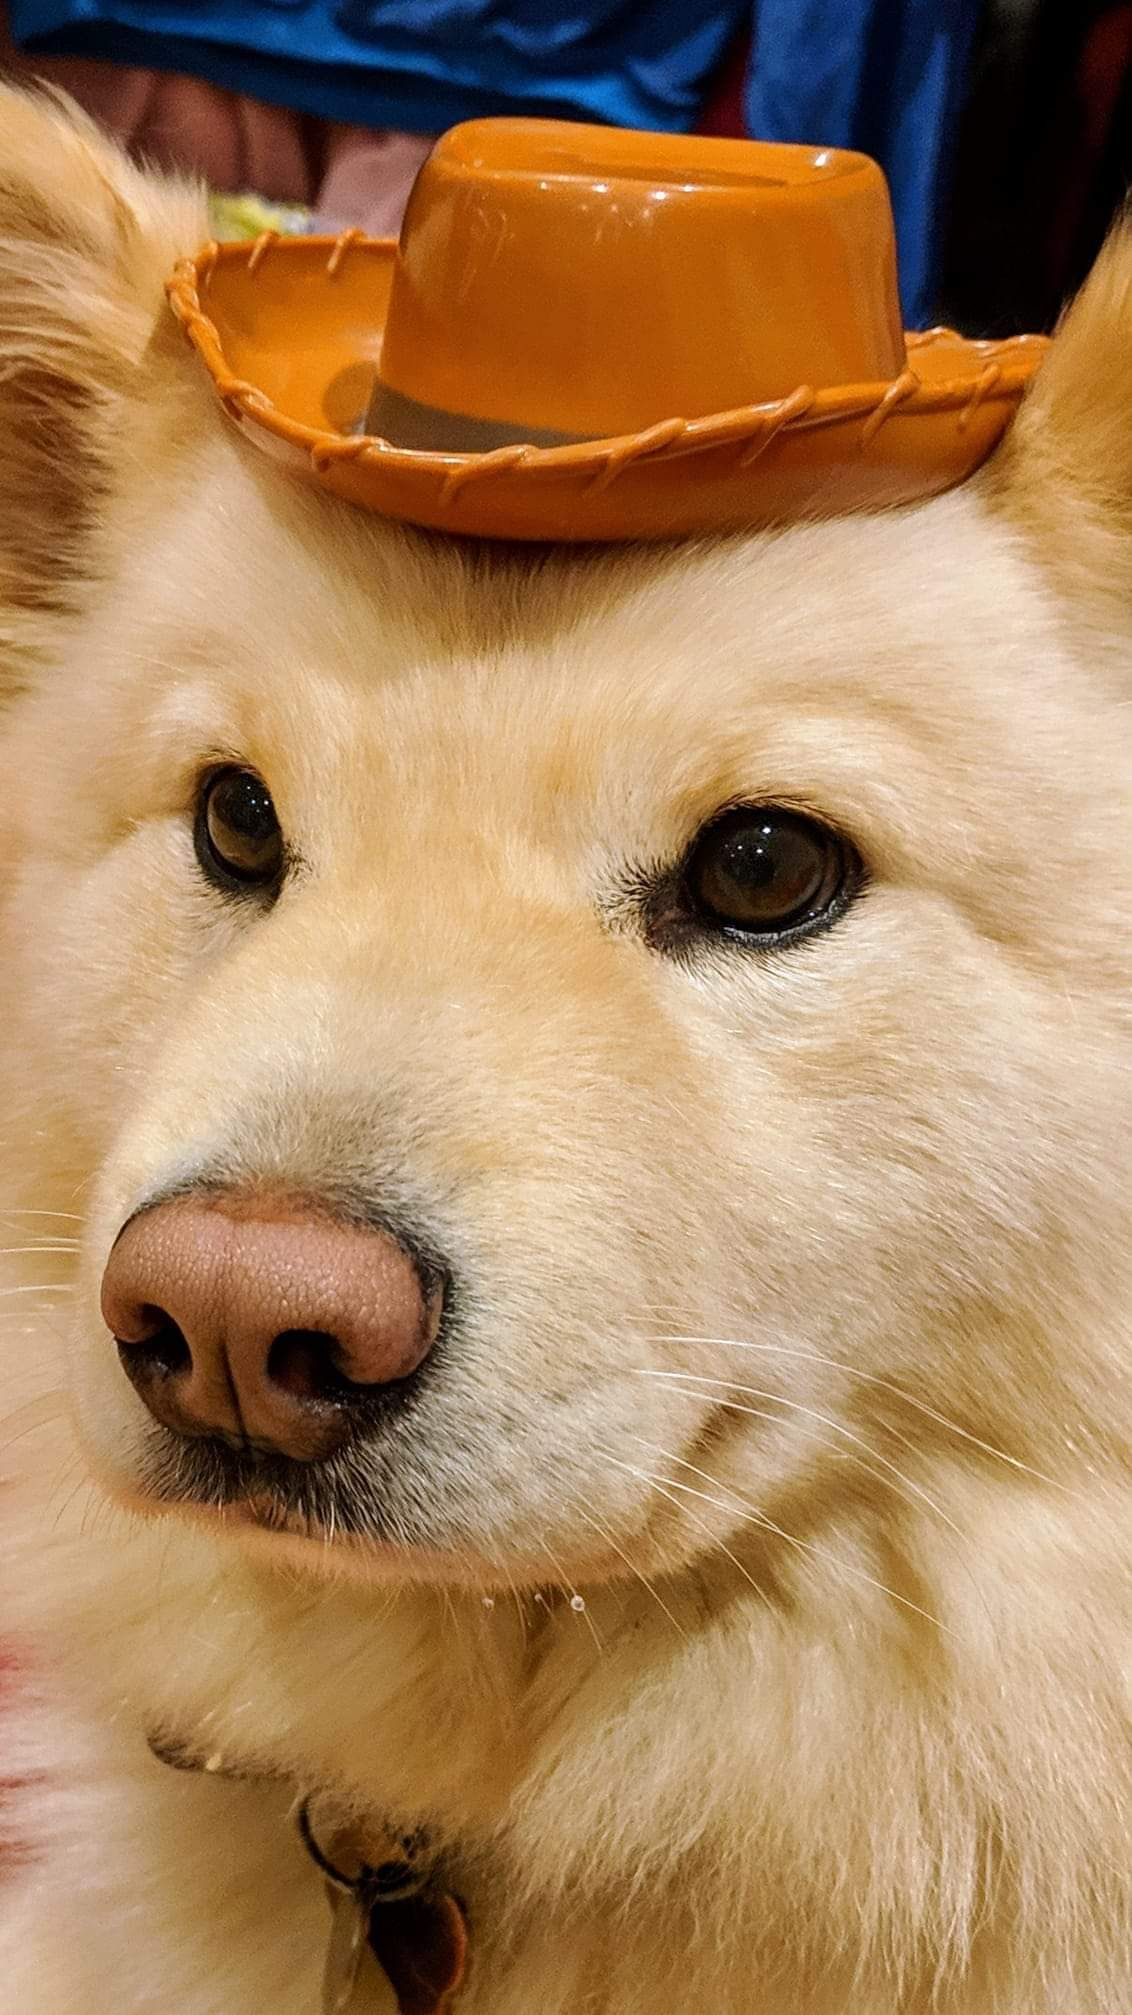 I wish i looked as good in hats as my dog does yeehaw